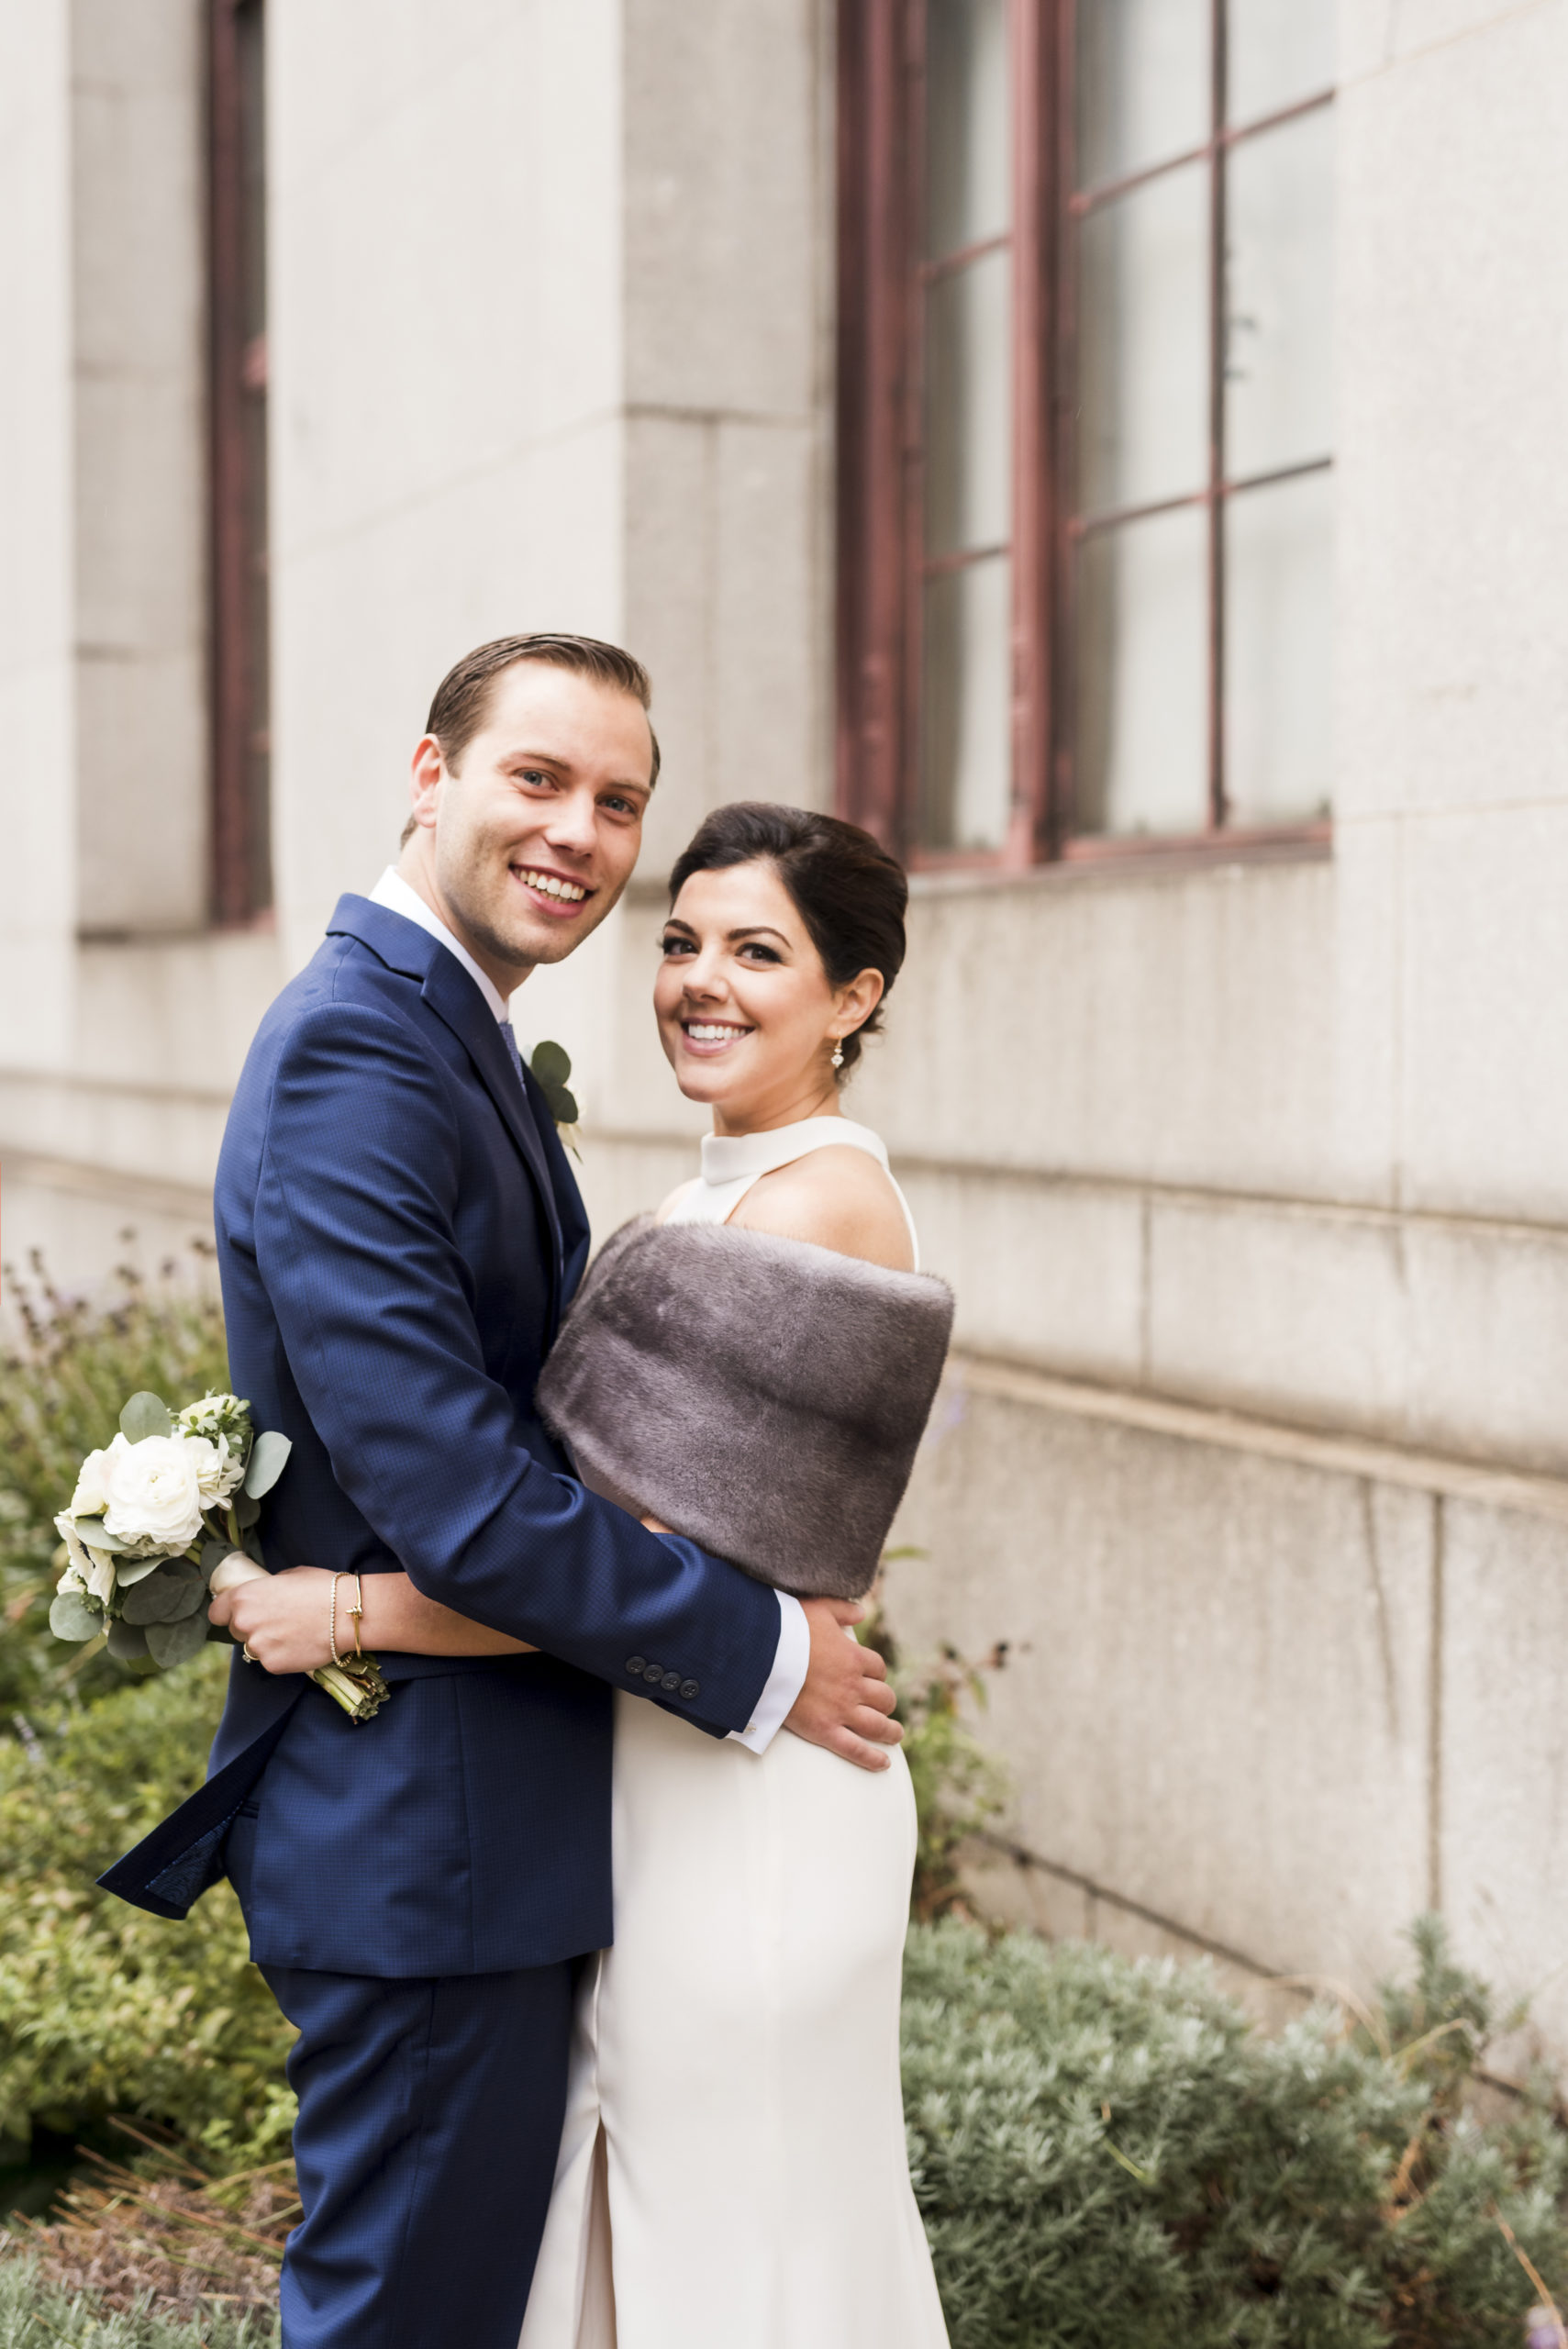 Chic City Hall Elopement 12